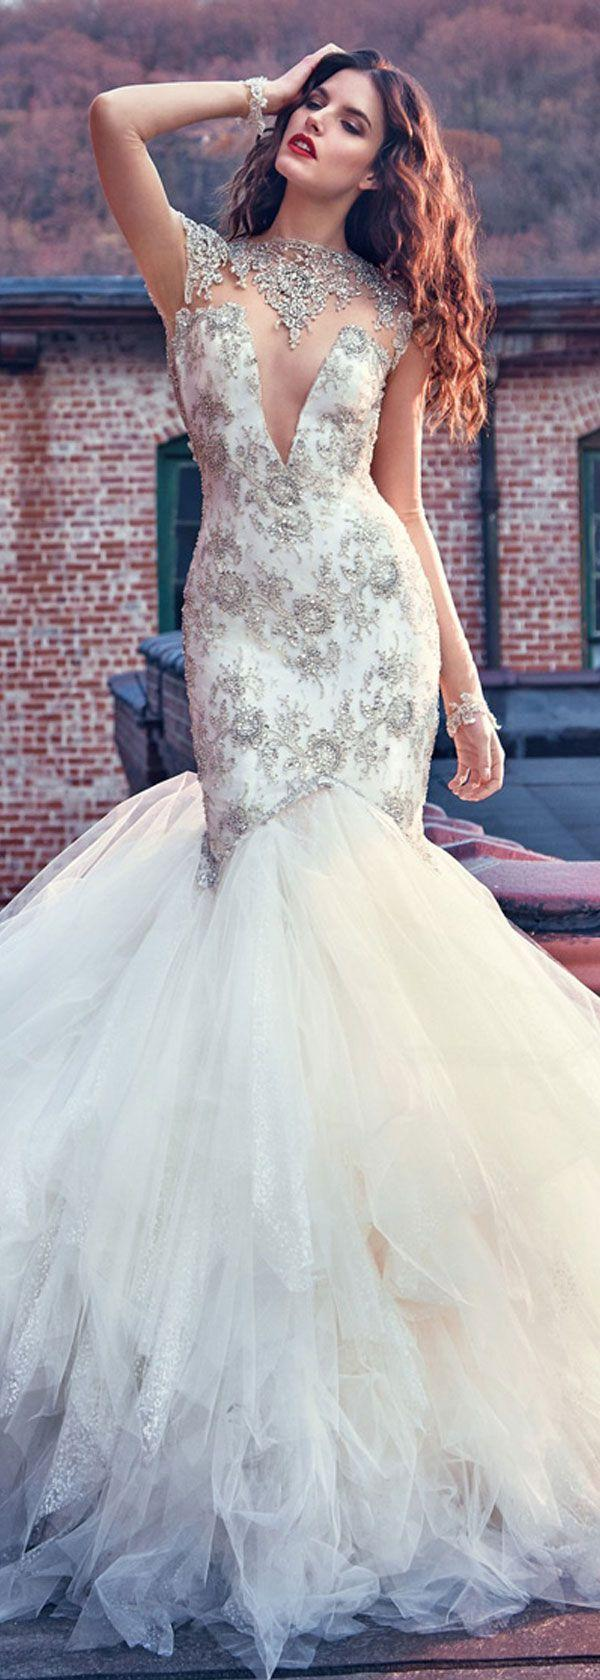 Wedding - Special Moments: Bridal Collection